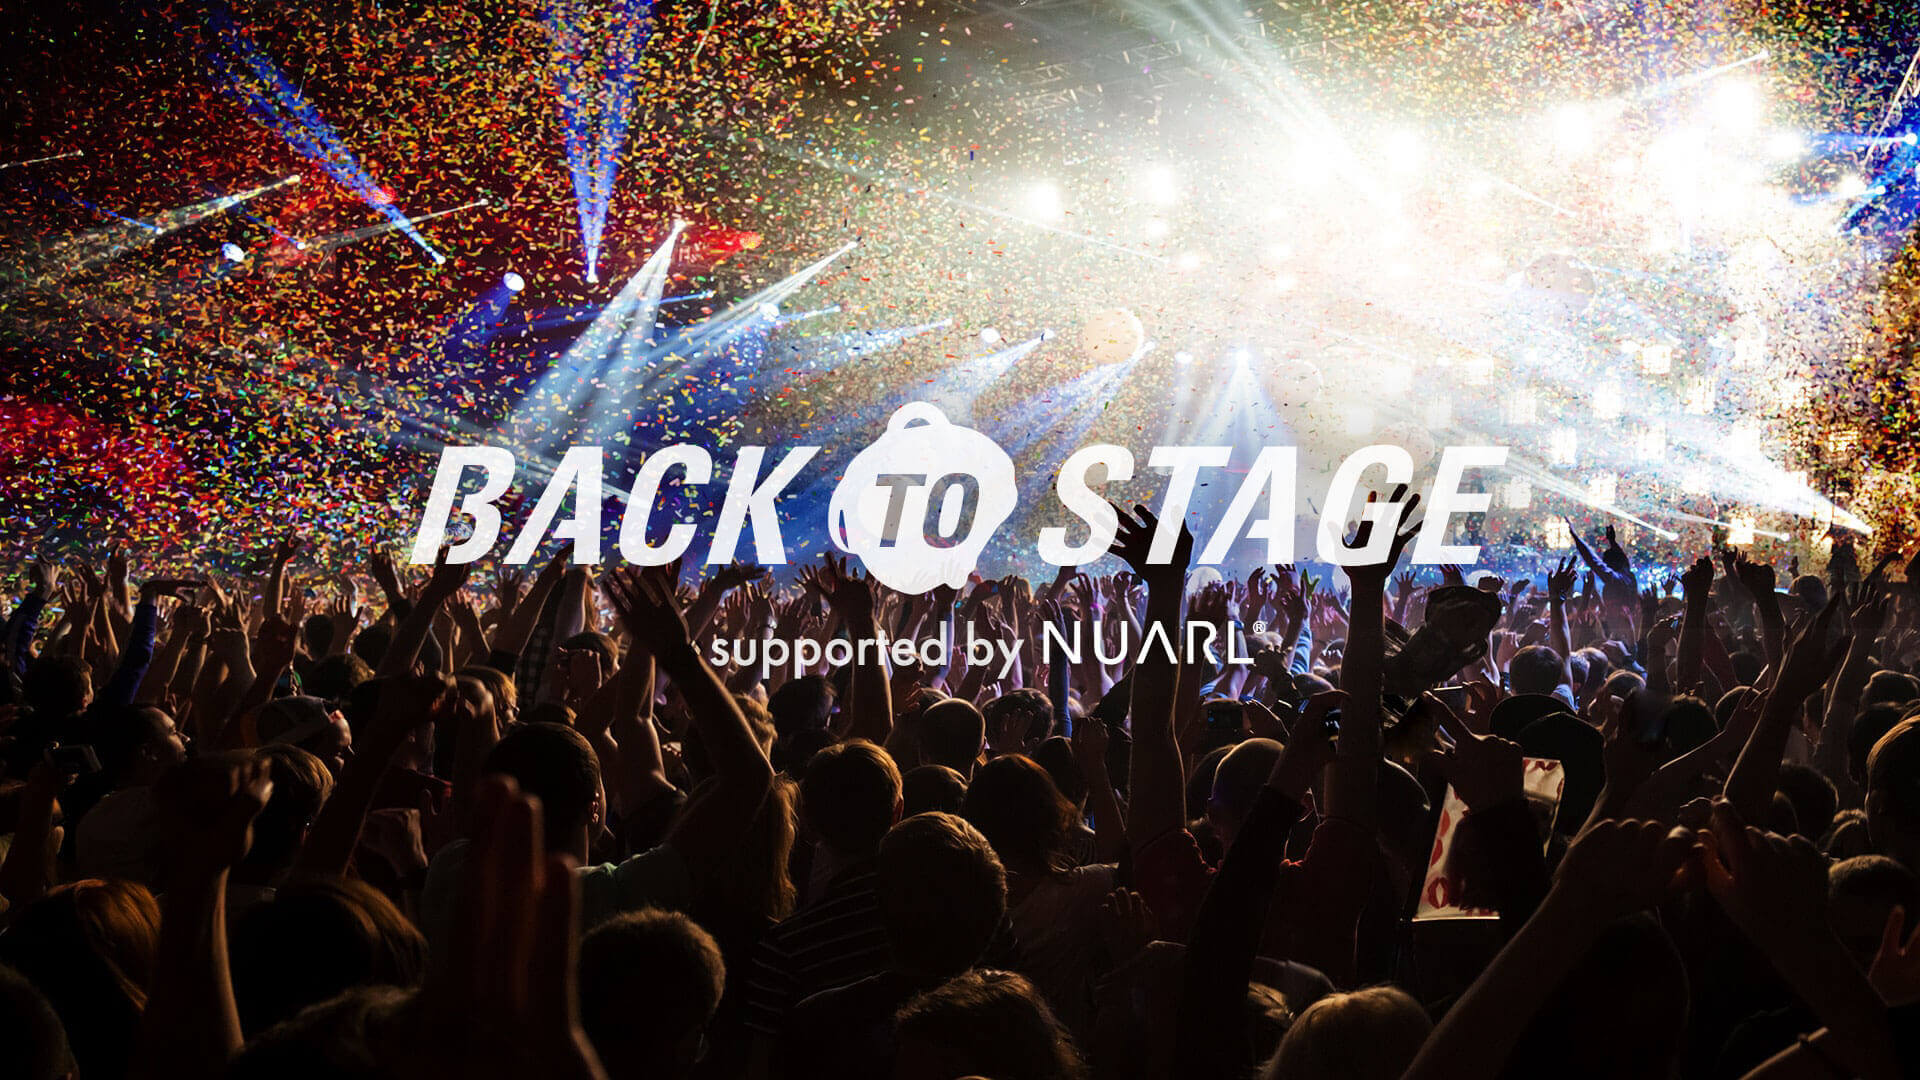 BACK TO STAGE